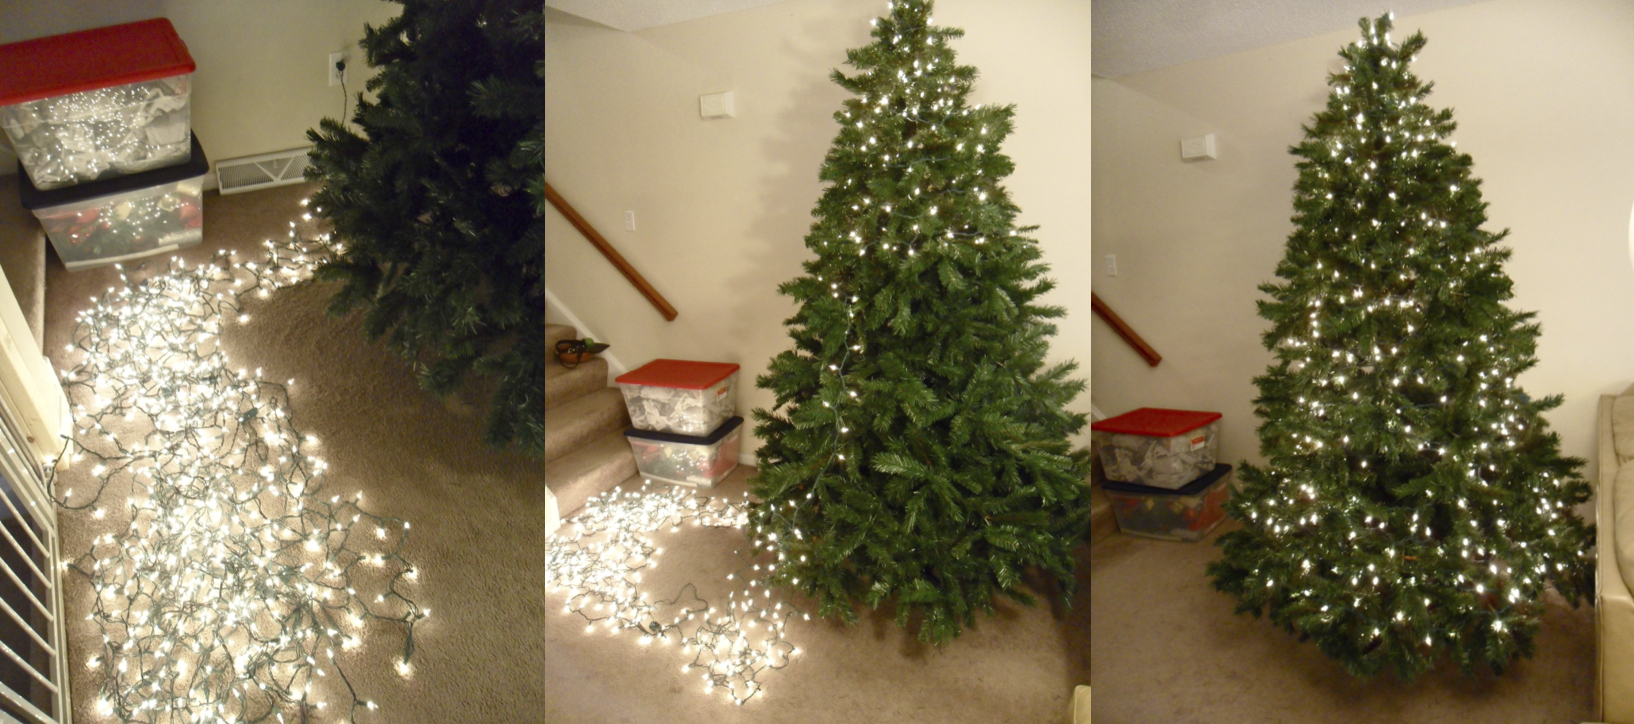 How To String Lights On A Tall Tree : Tips for Decorating Your Christmas Tree making it with danielle